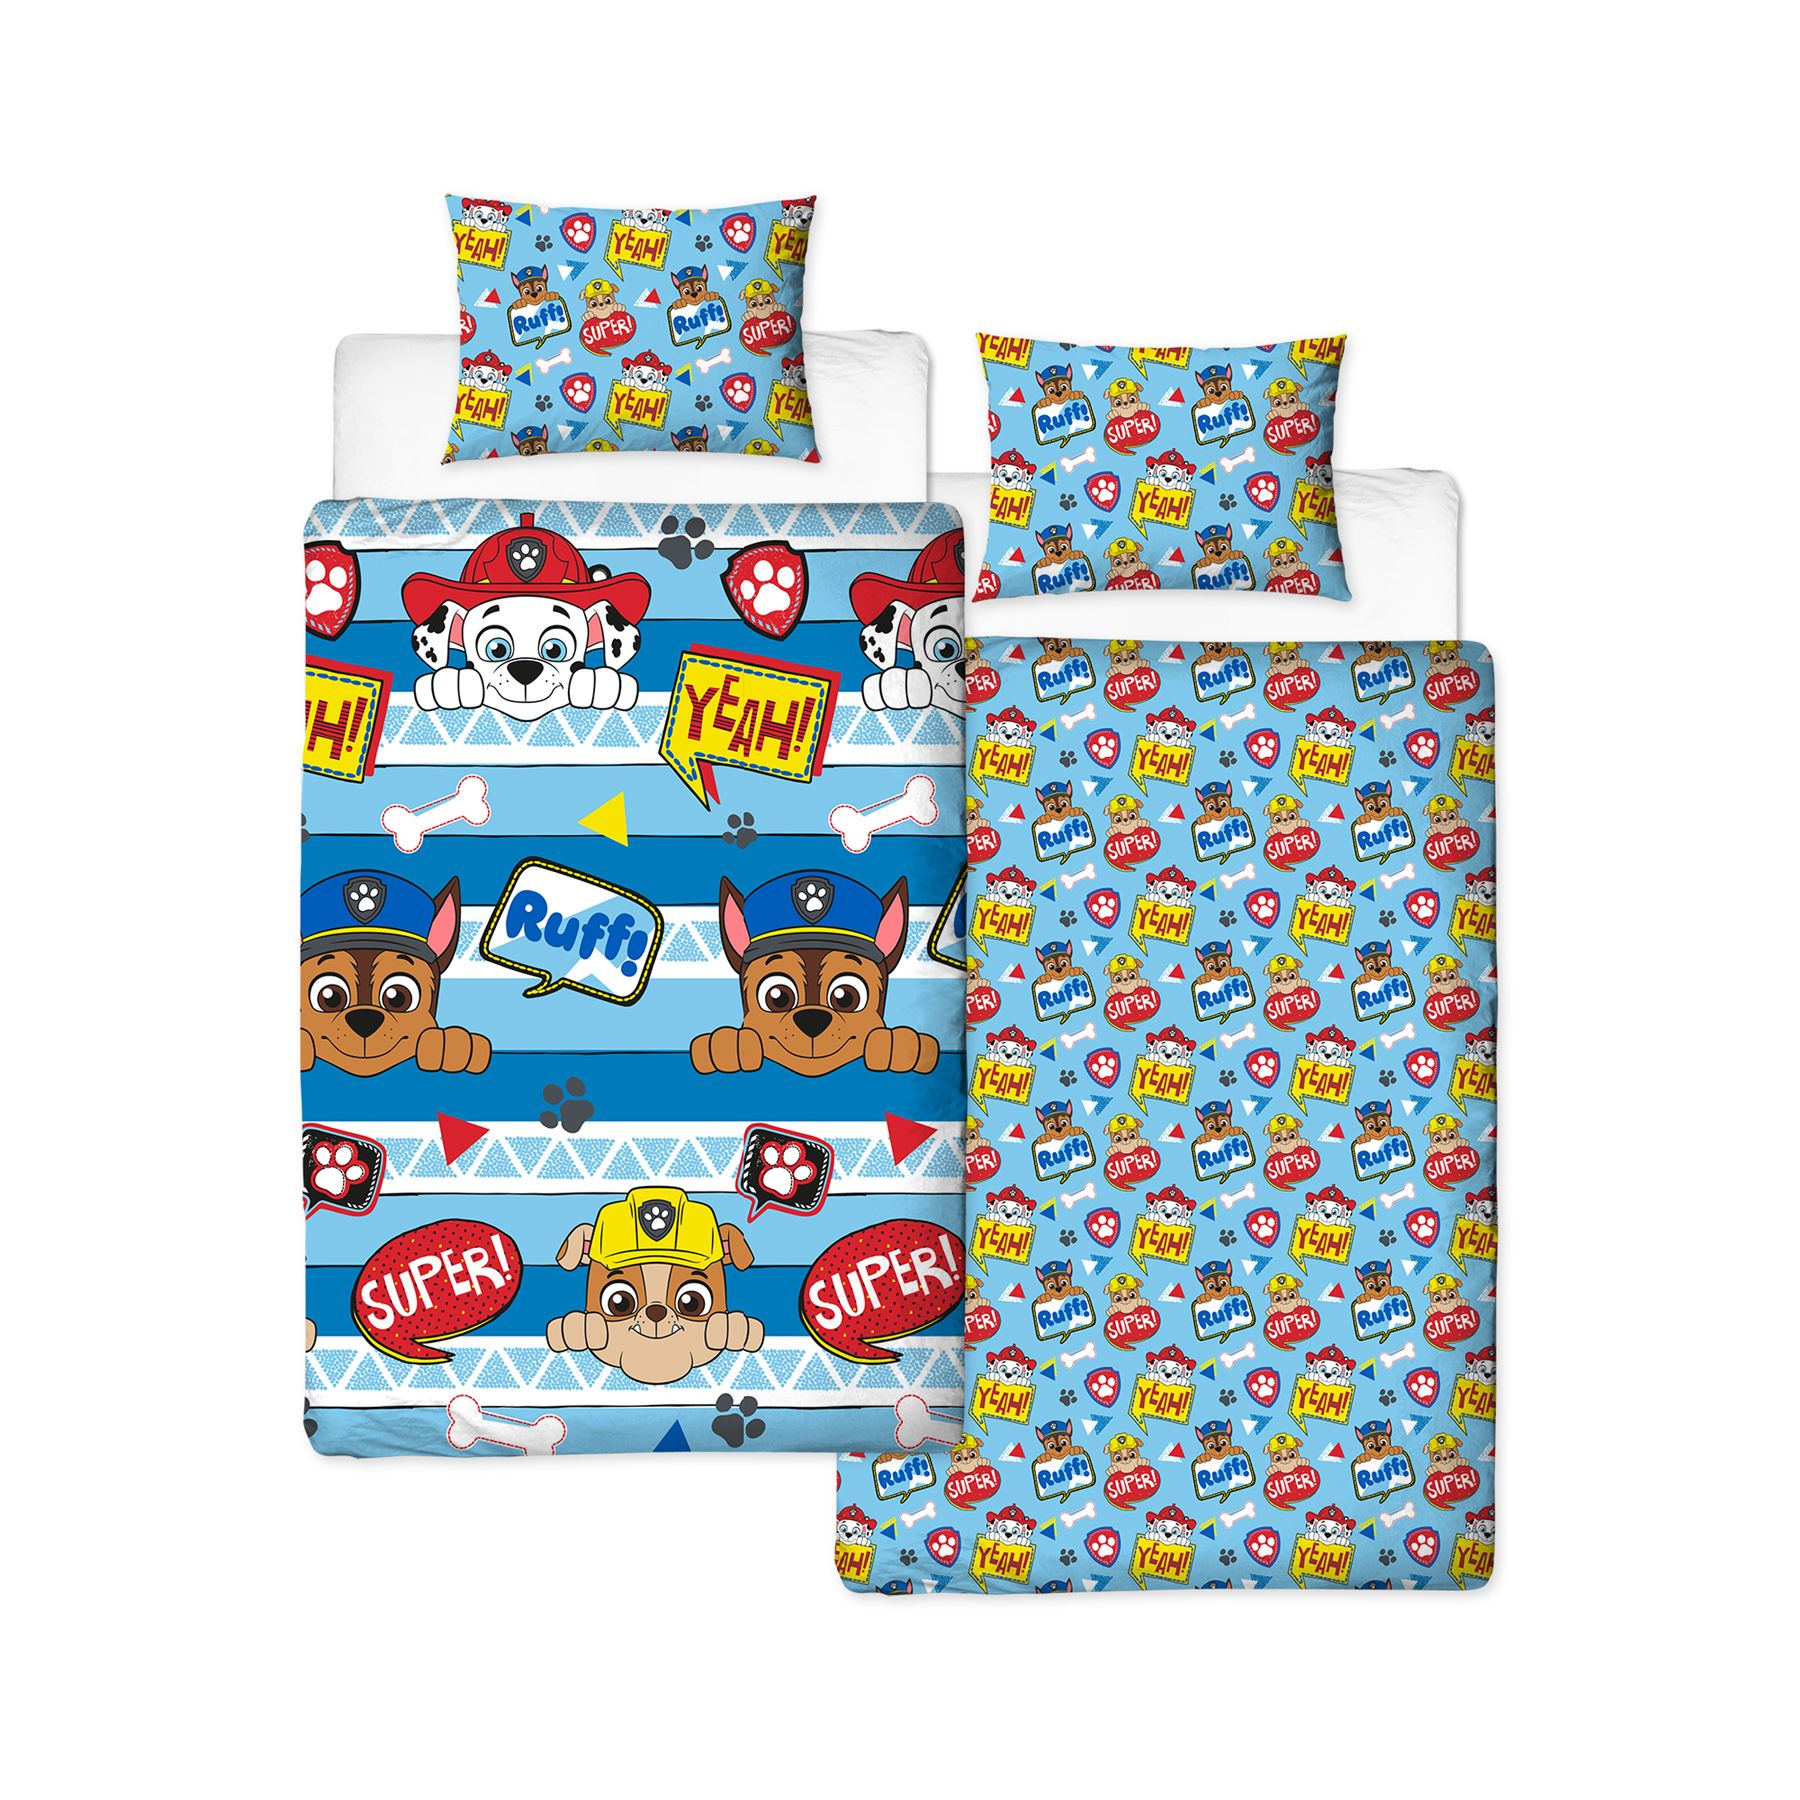 Official-Paw-Patrol-Licensed-Duvet-Covers-Single-Double-Chase-Skye-Marshall thumbnail 32